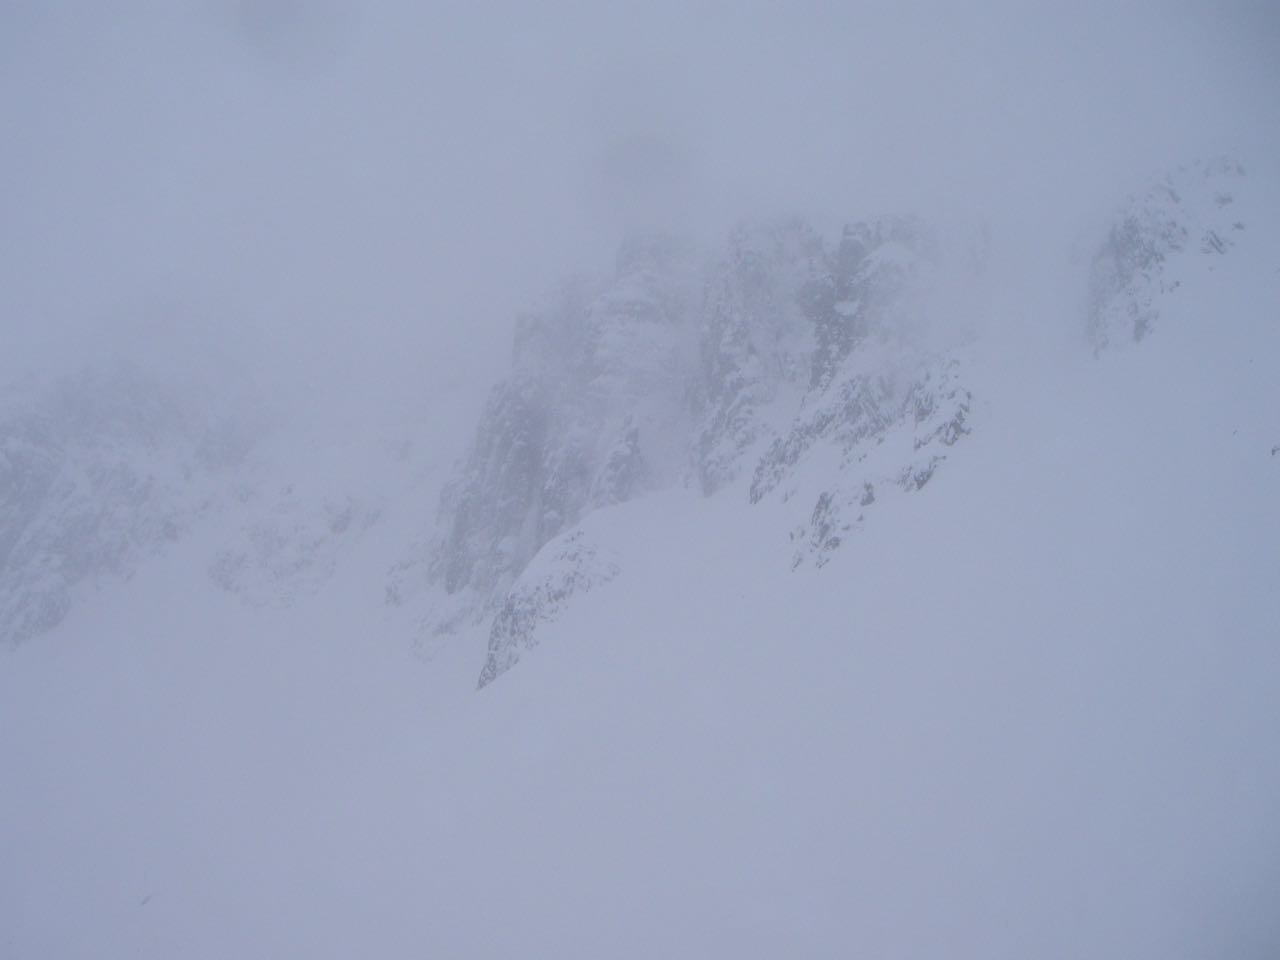 View across the Lochan cliffs showing snow laden faces